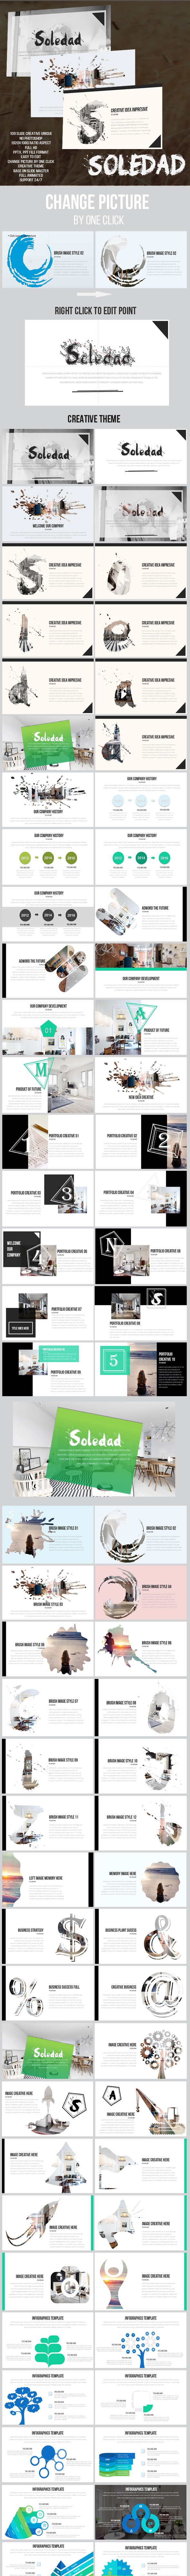 Soledad Powerpoint Templates - Business PowerPoint Templates